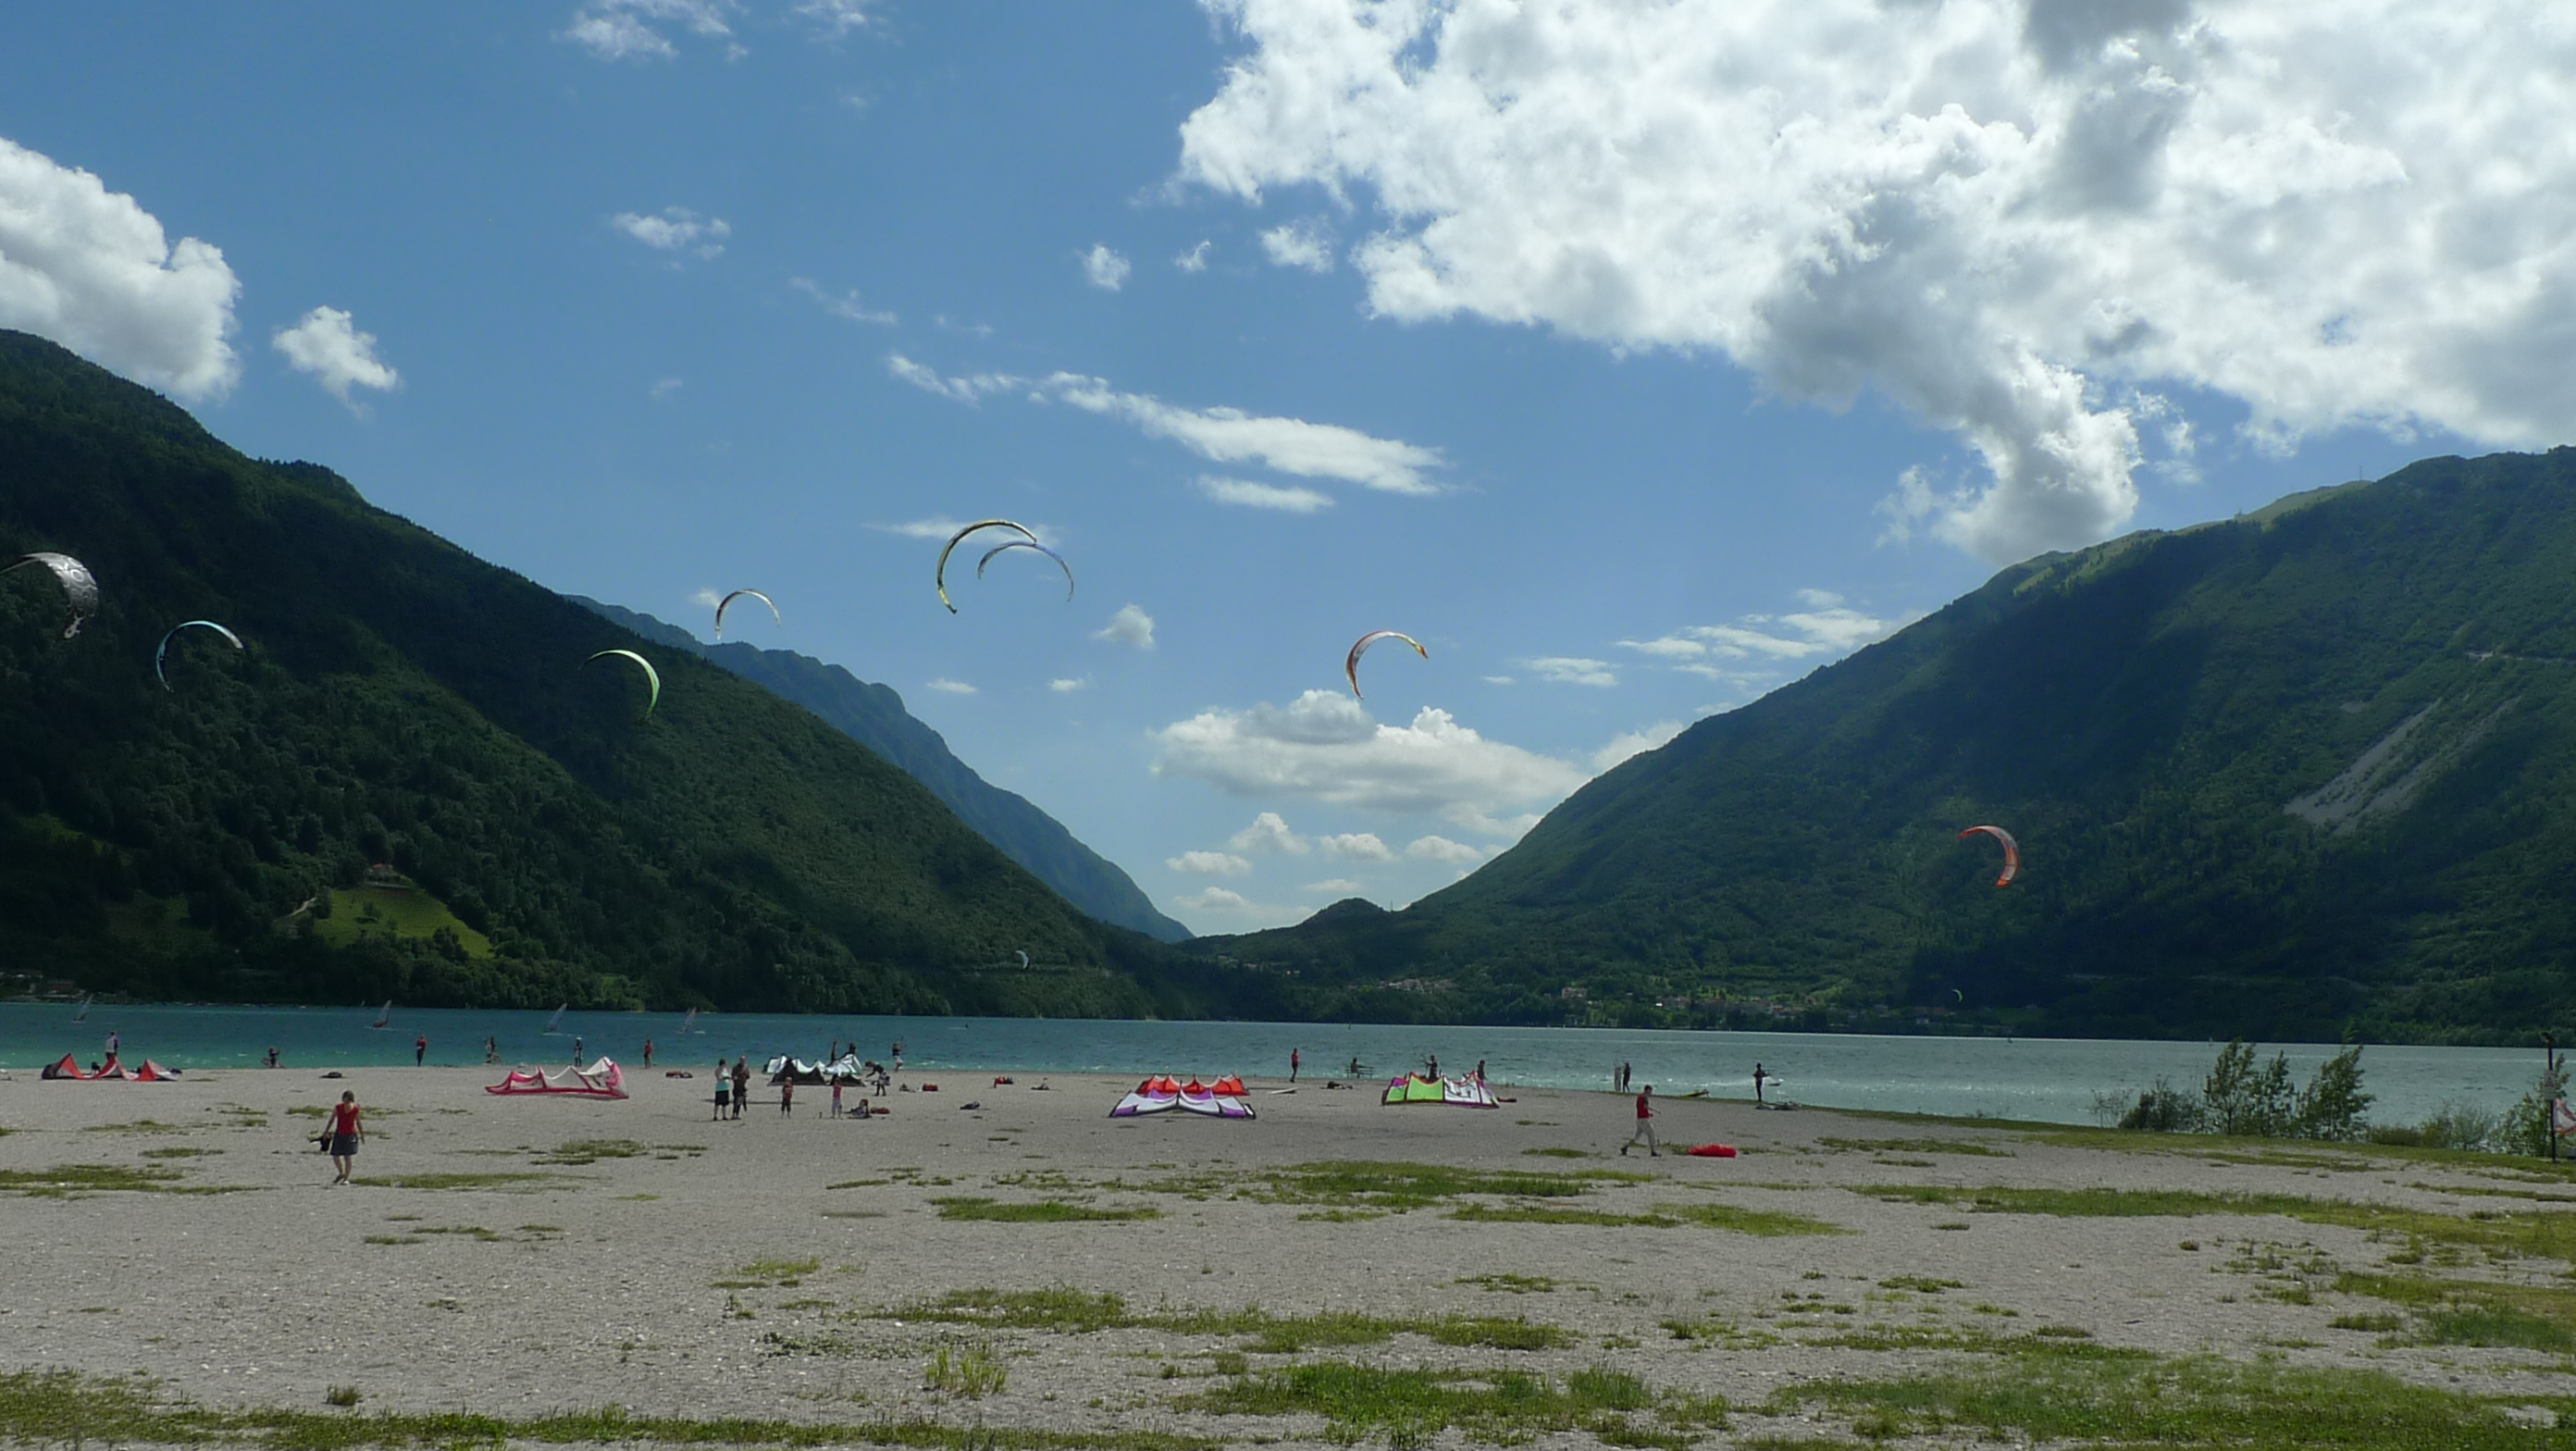 Kitesurfing between the mountains